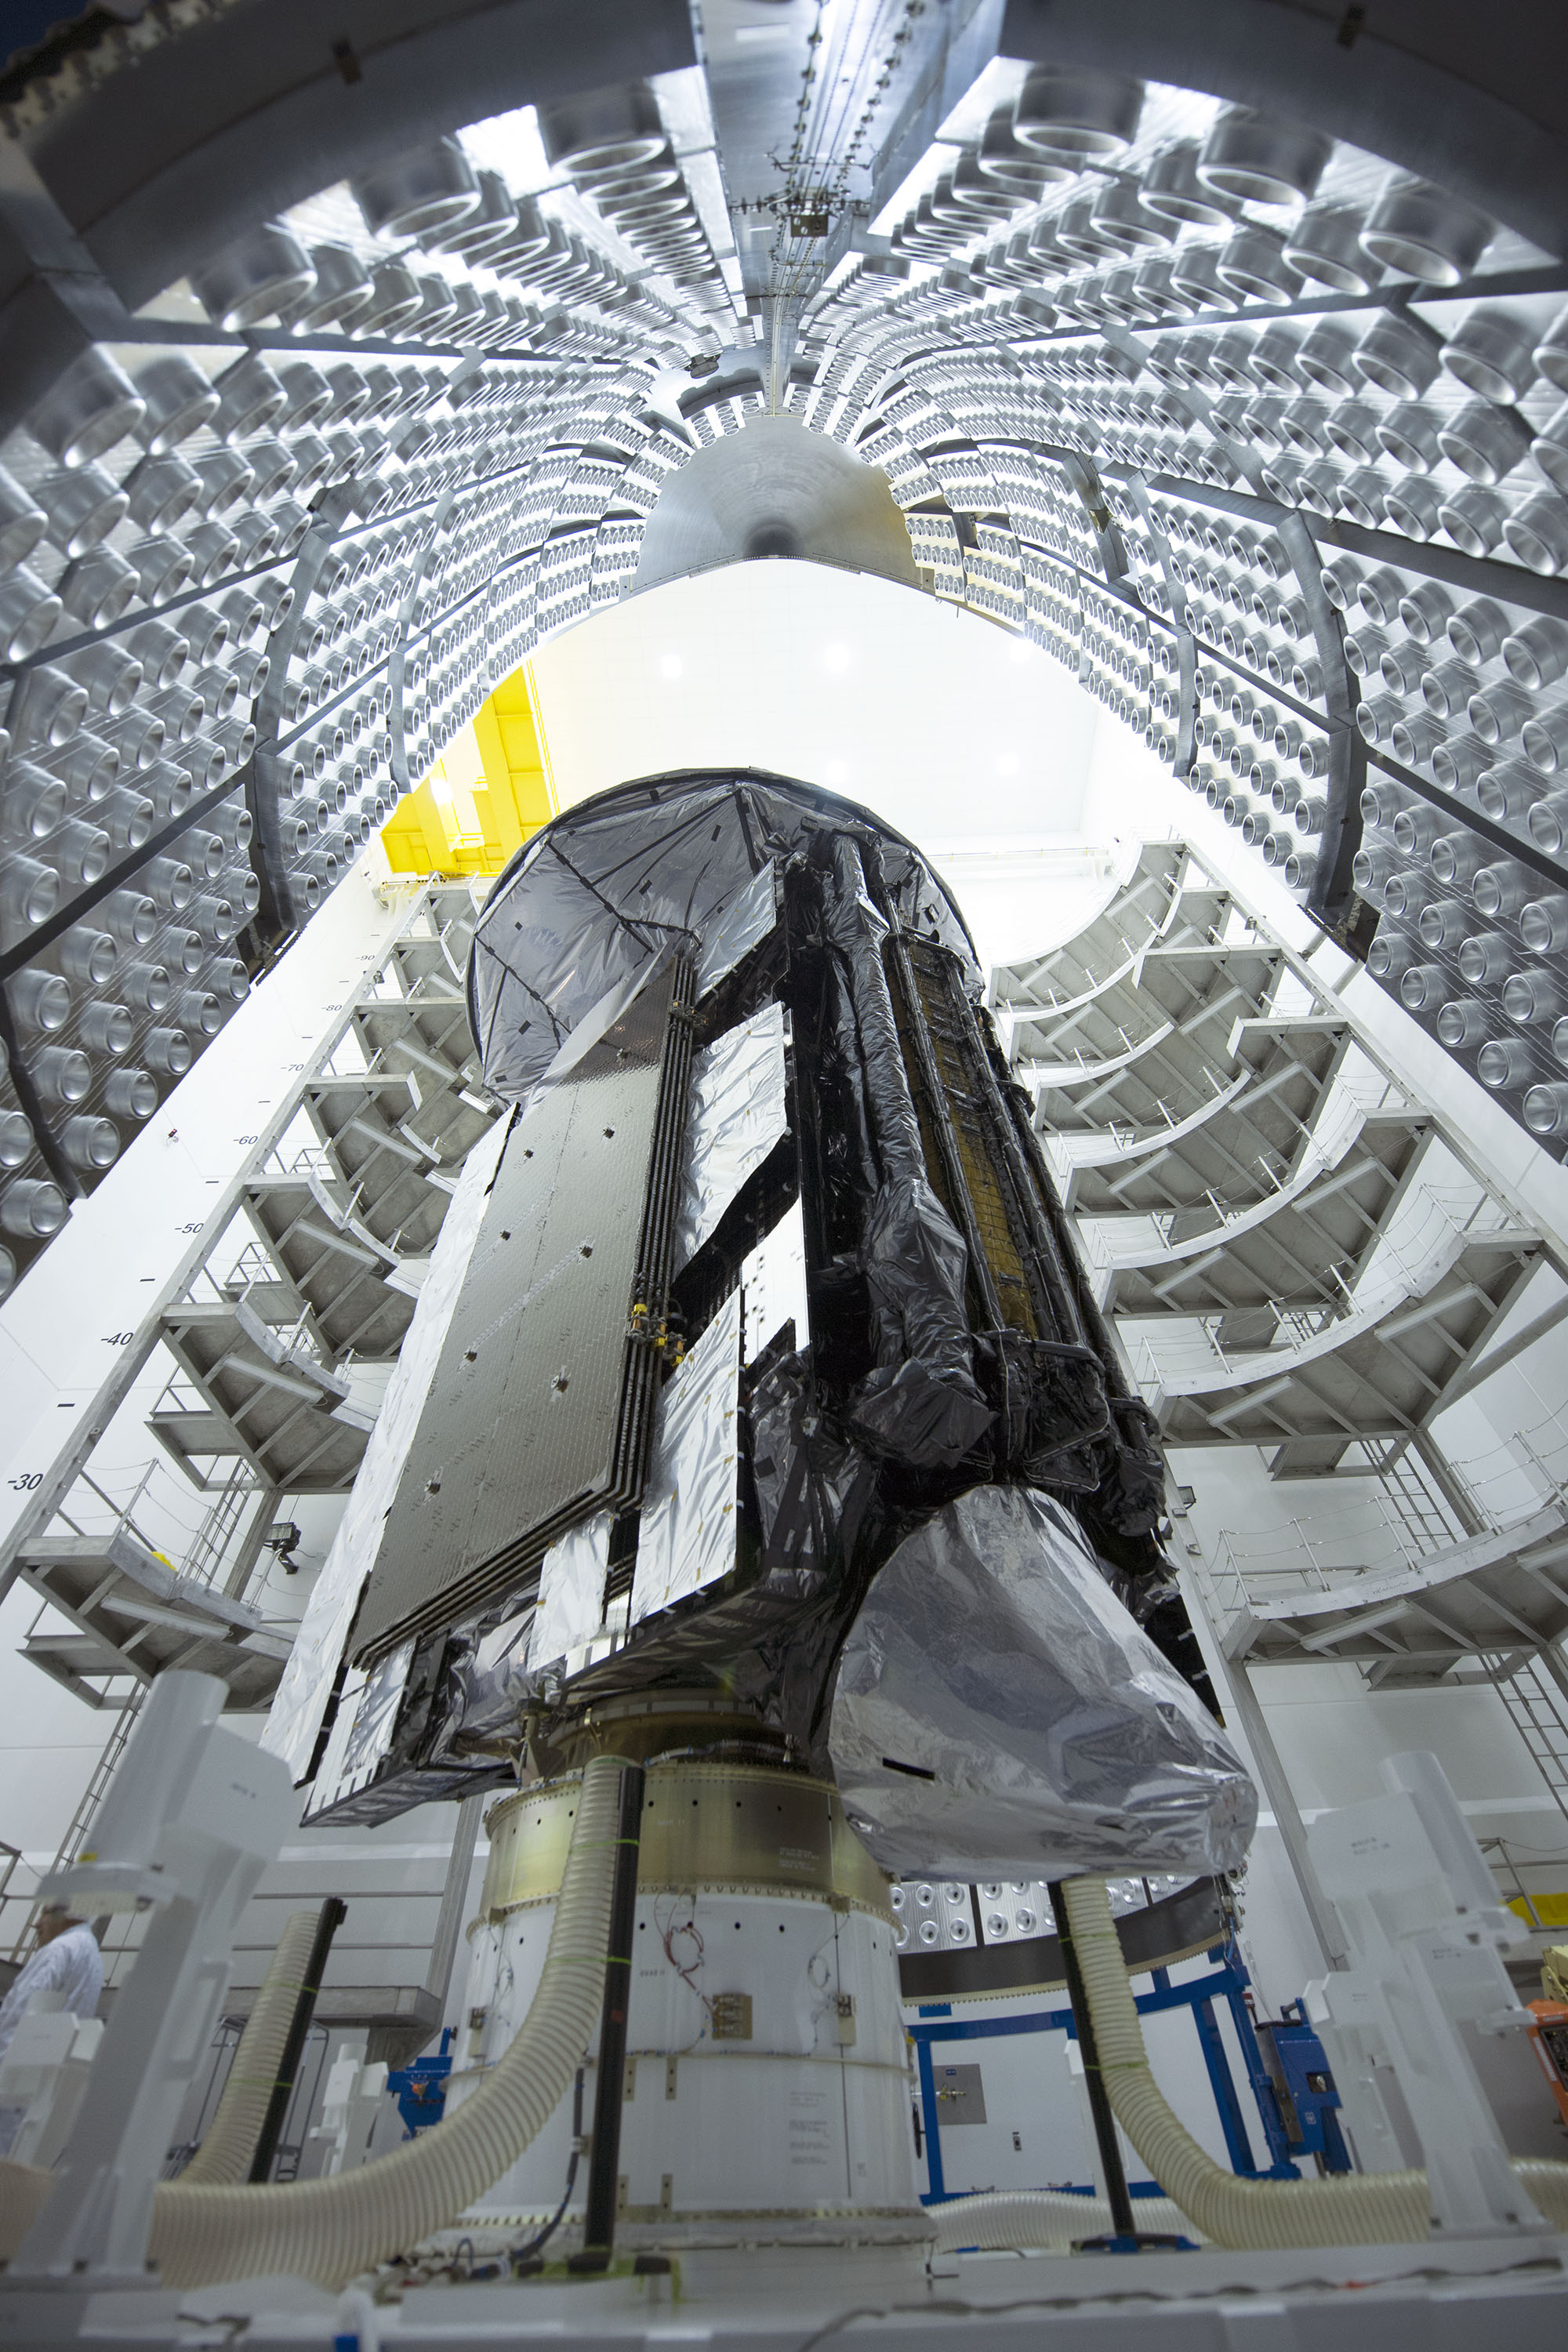 The MUOS-4 preparing to be launched in 2015. Lockheed Martin Photo